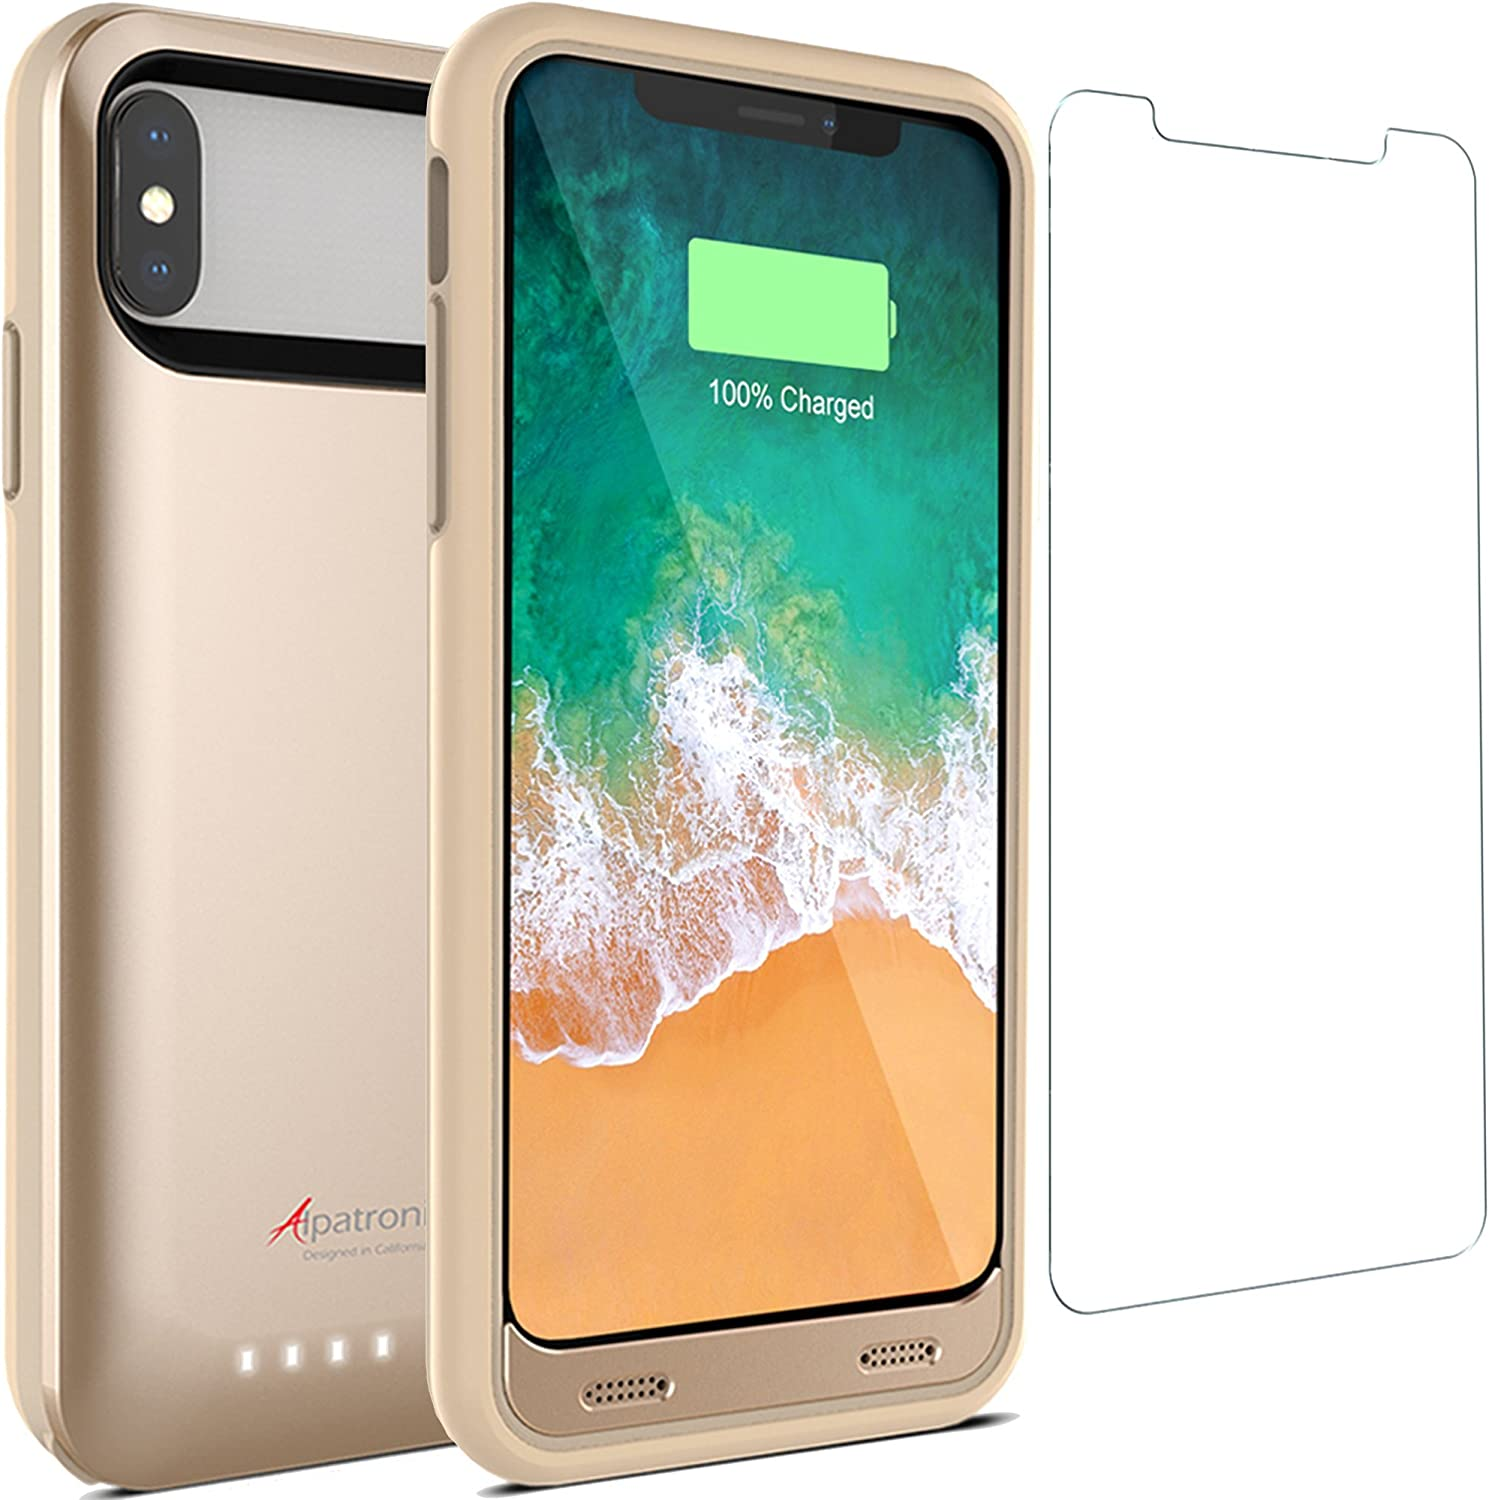 Alpatronix Battery Case for iPhone X/XS, BX10 4000mAh Slim Rechargeable Protective Portable Charger Case External Battery Pack Smart Cover Backup Power Bank Compatible w/iPhone X, iPhone Xs - Gold